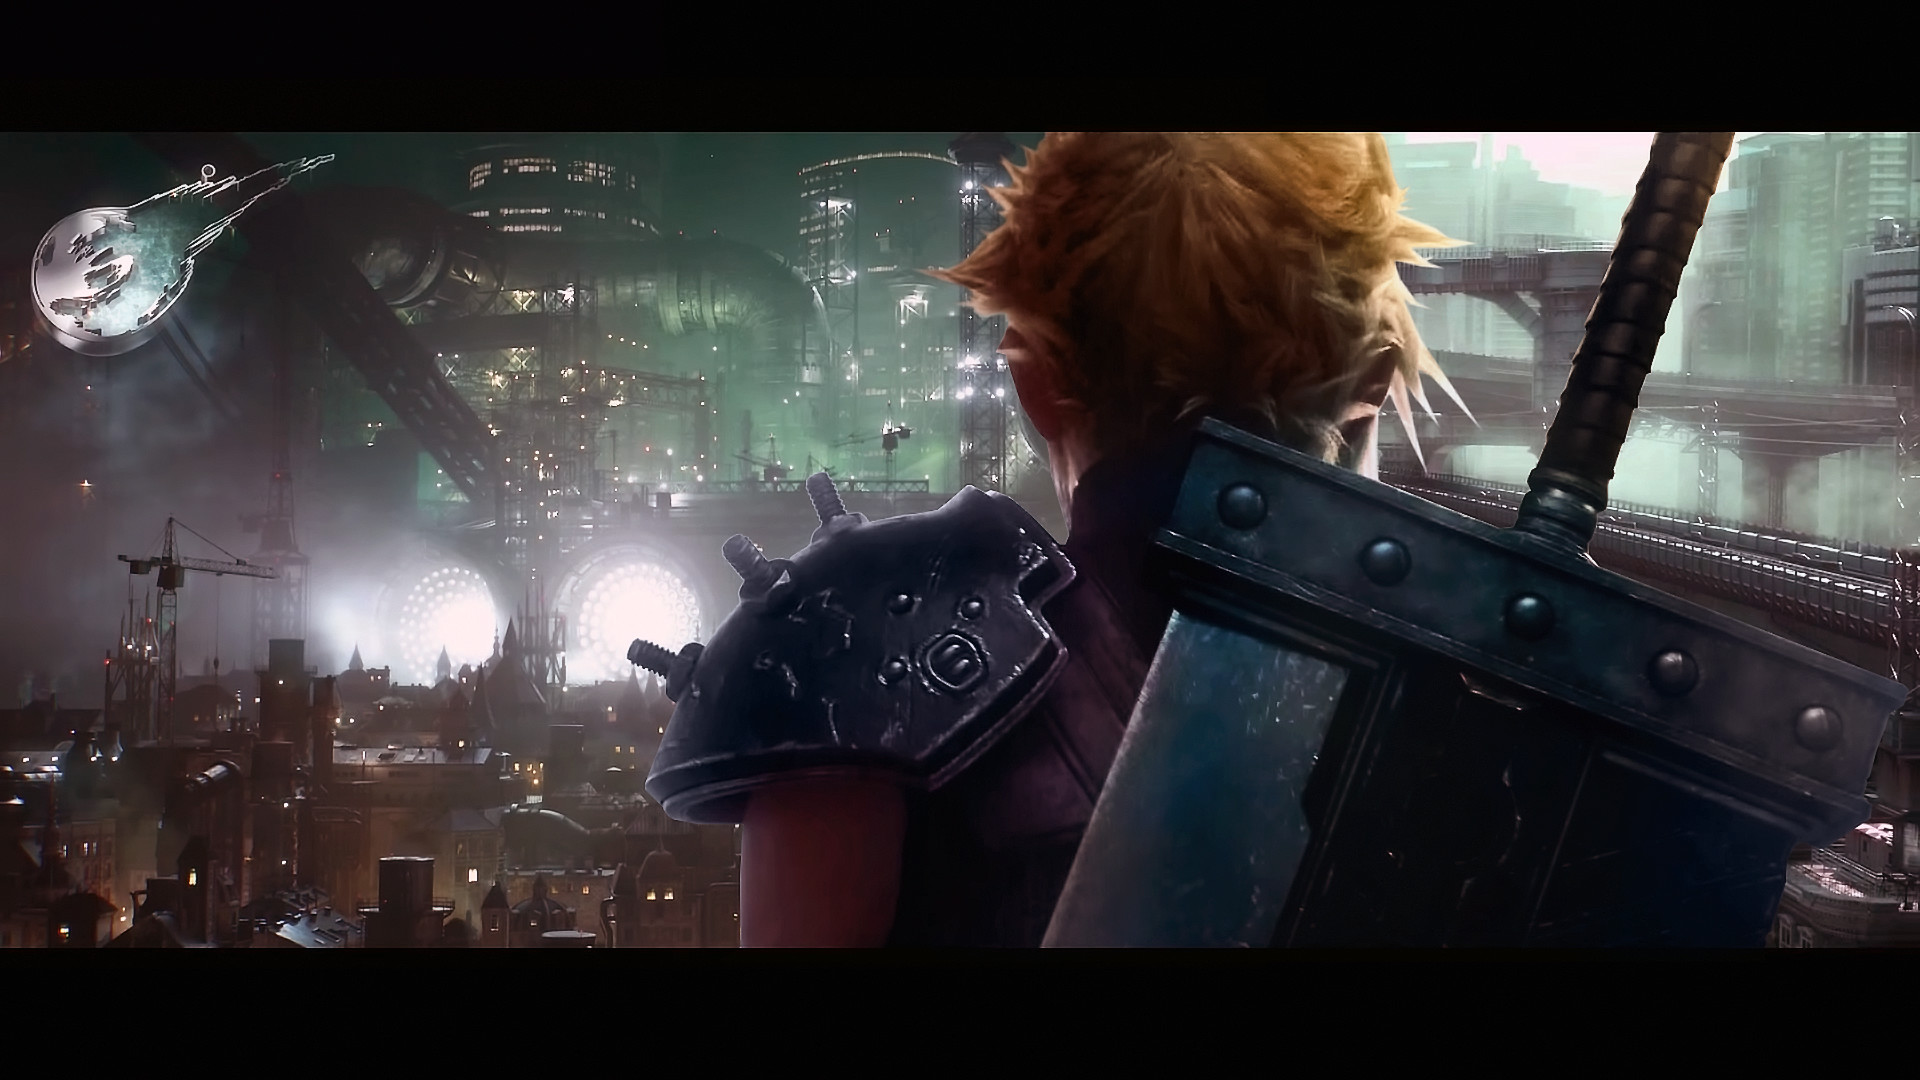 Final Fantasy Vii Remake Wallpaper 89 Images